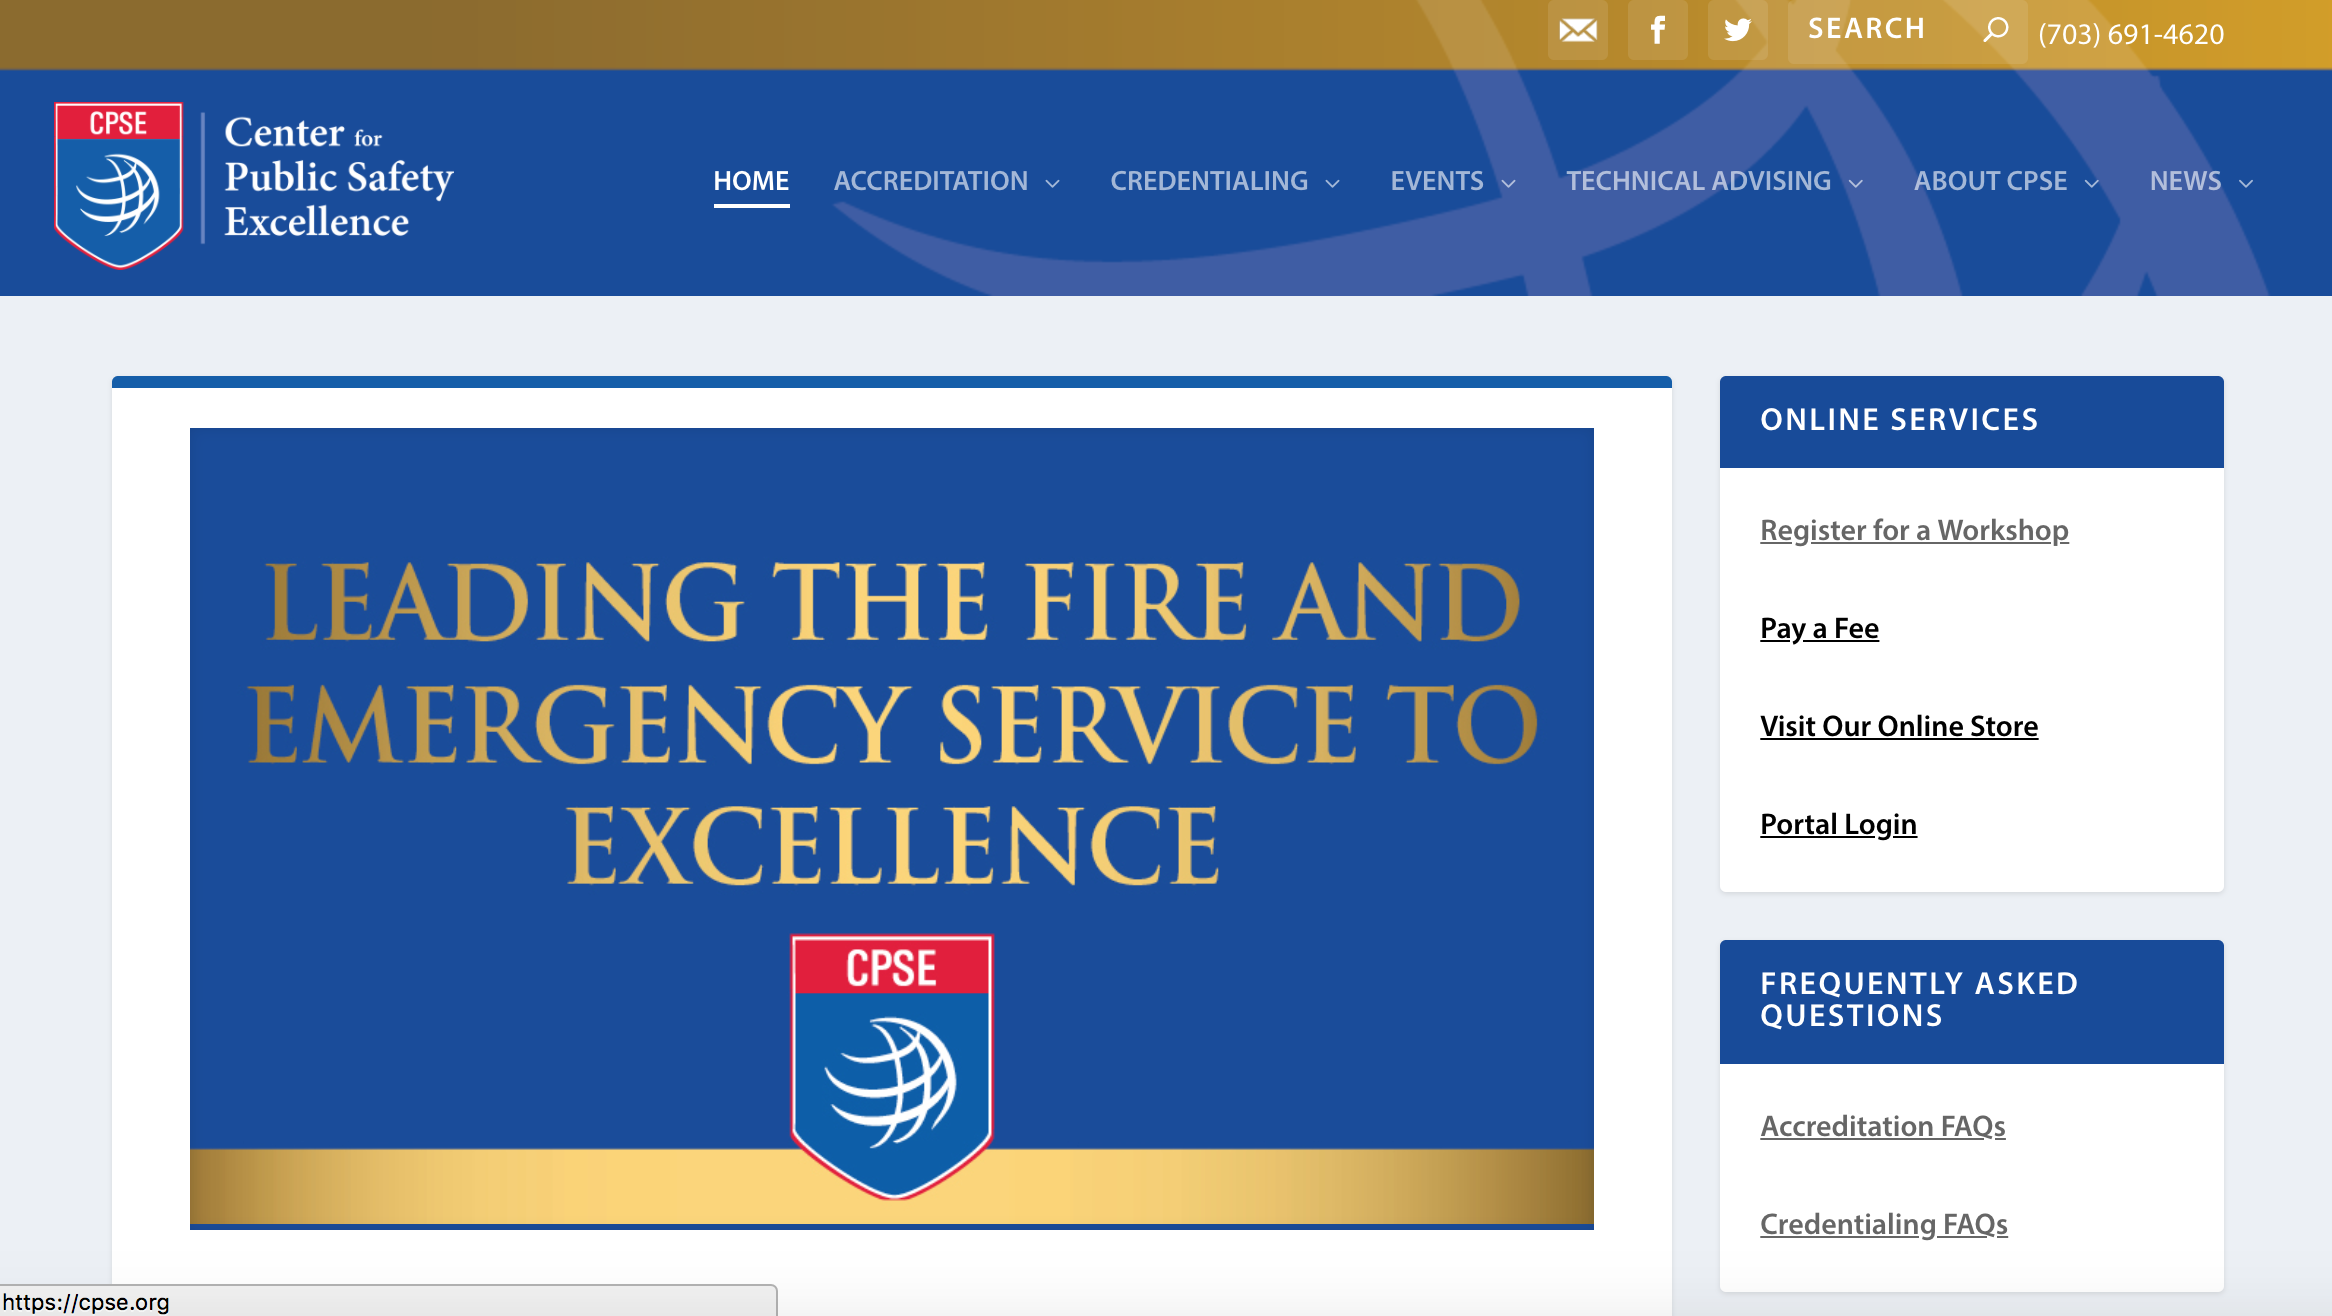 Home - Center for Public Safety Excellence